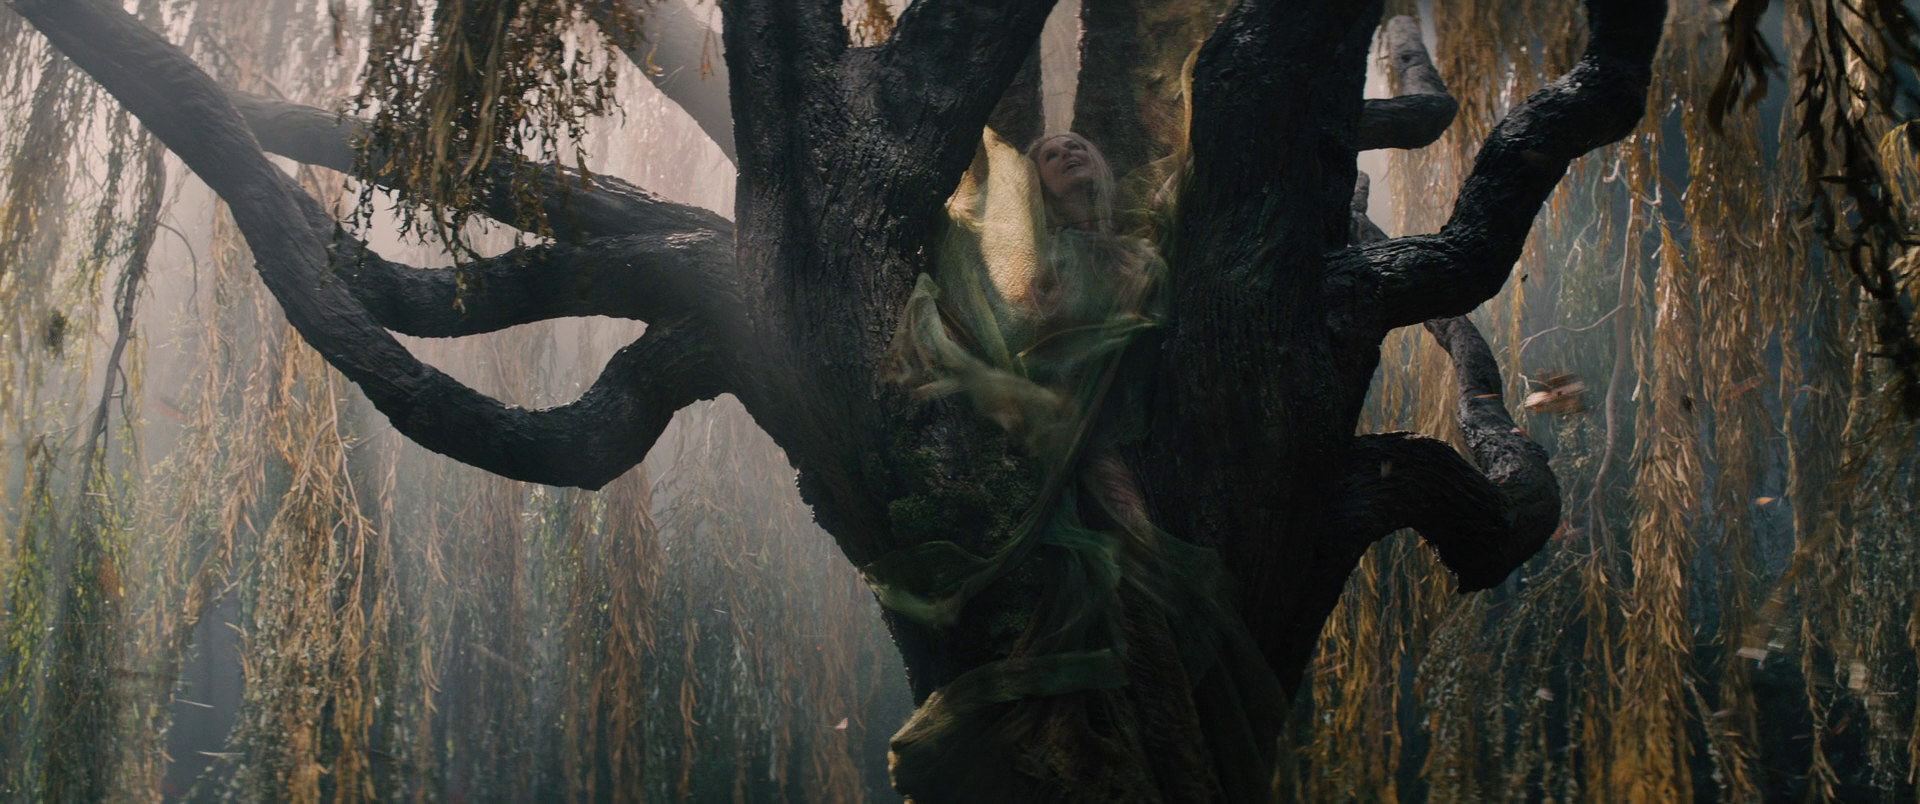 Into the Woods  / Чем дальше в лес...  [2014 / BDRip 1080p] [Adventure / Fantasy / Music]